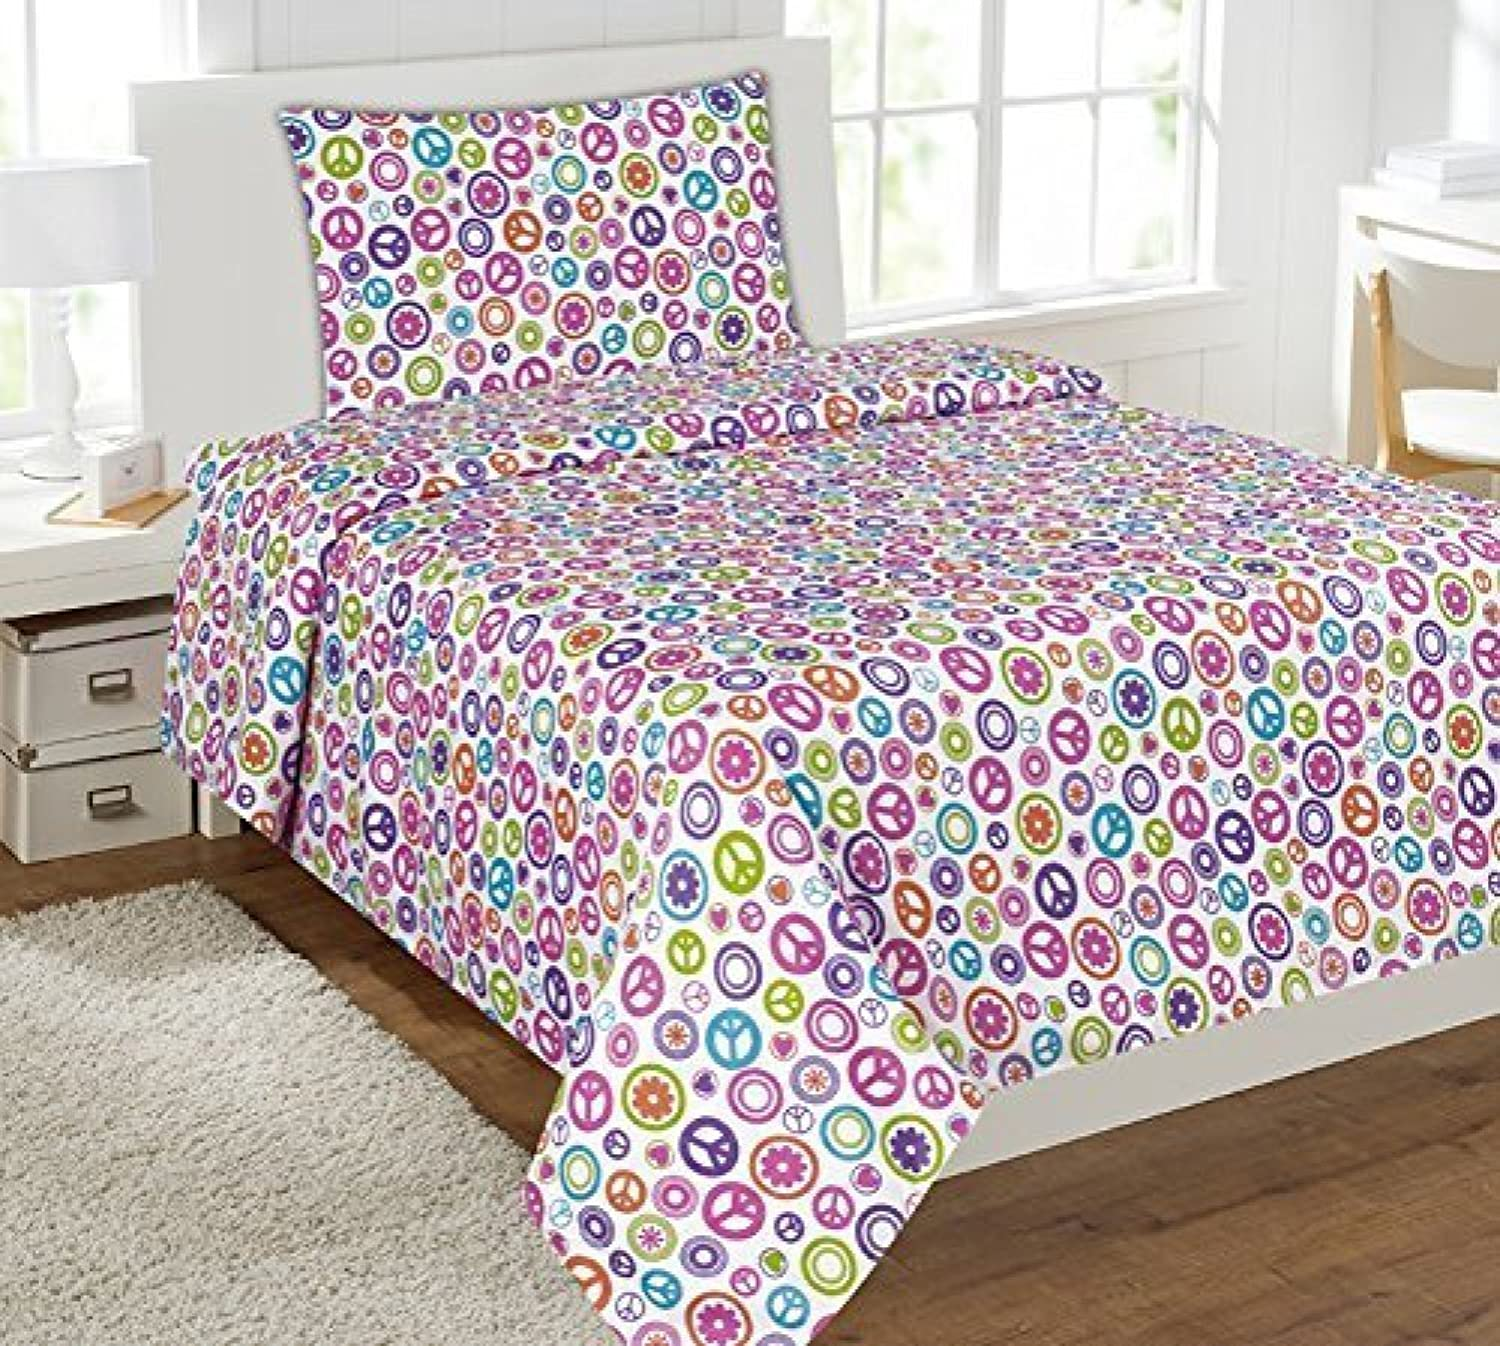 Linen Plus Full Size 4pc Sheet Set for Girls Peace Signs White Pink Purple orange Green Turquoise New